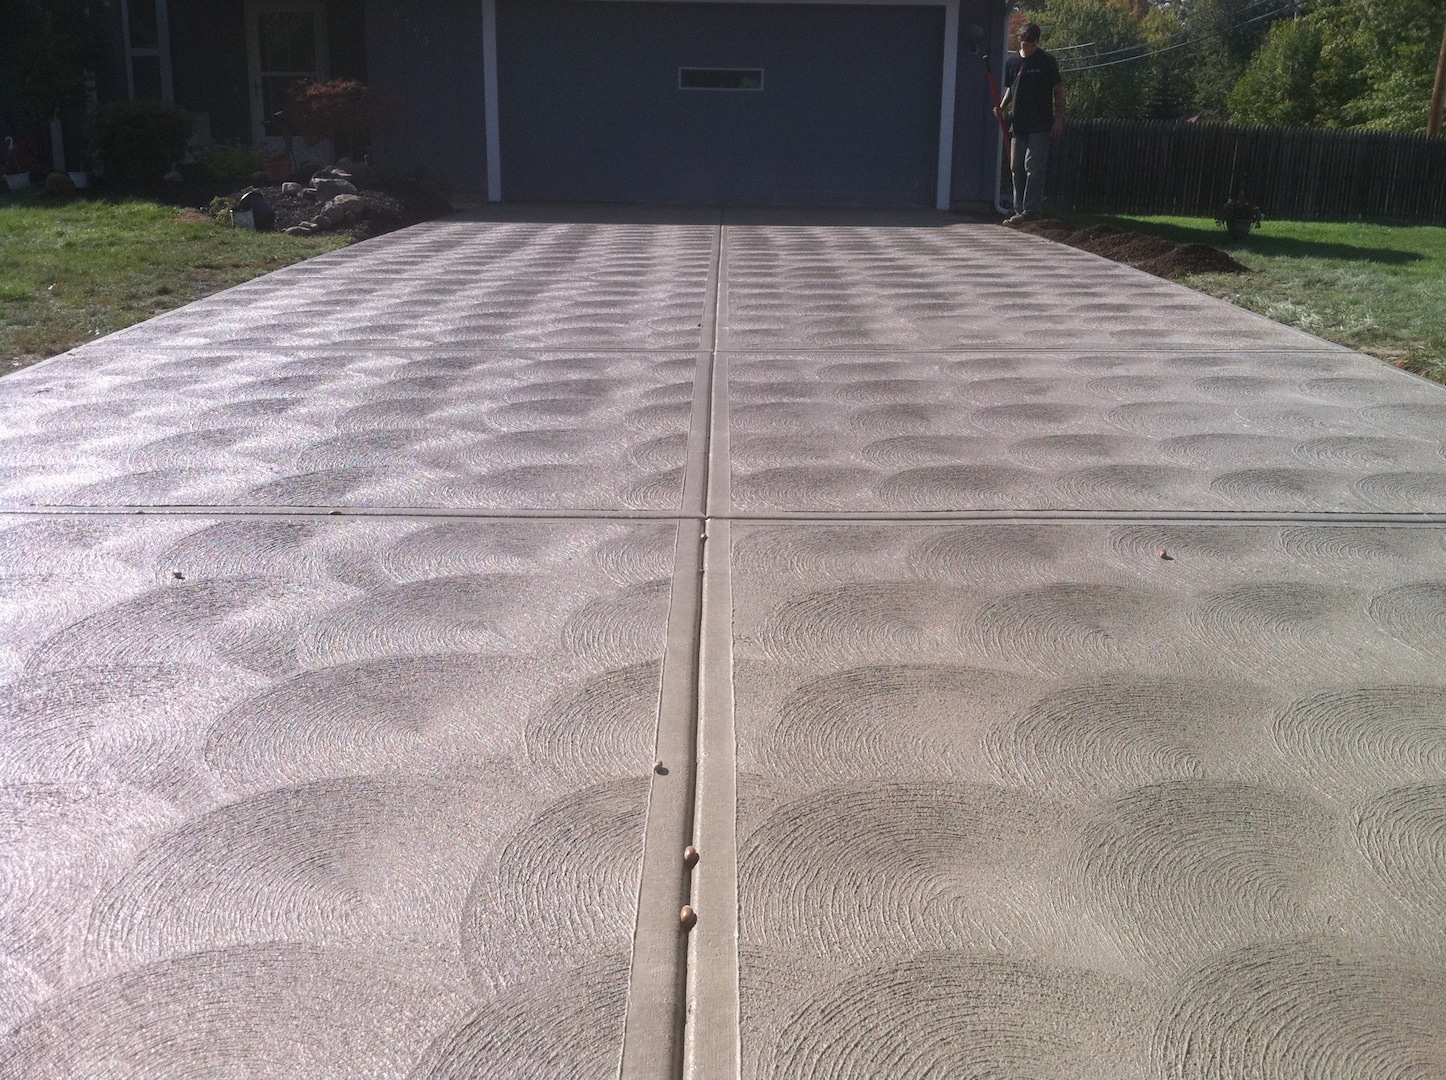 Swirl Finish Concrete - Construction, Practical Considerations and